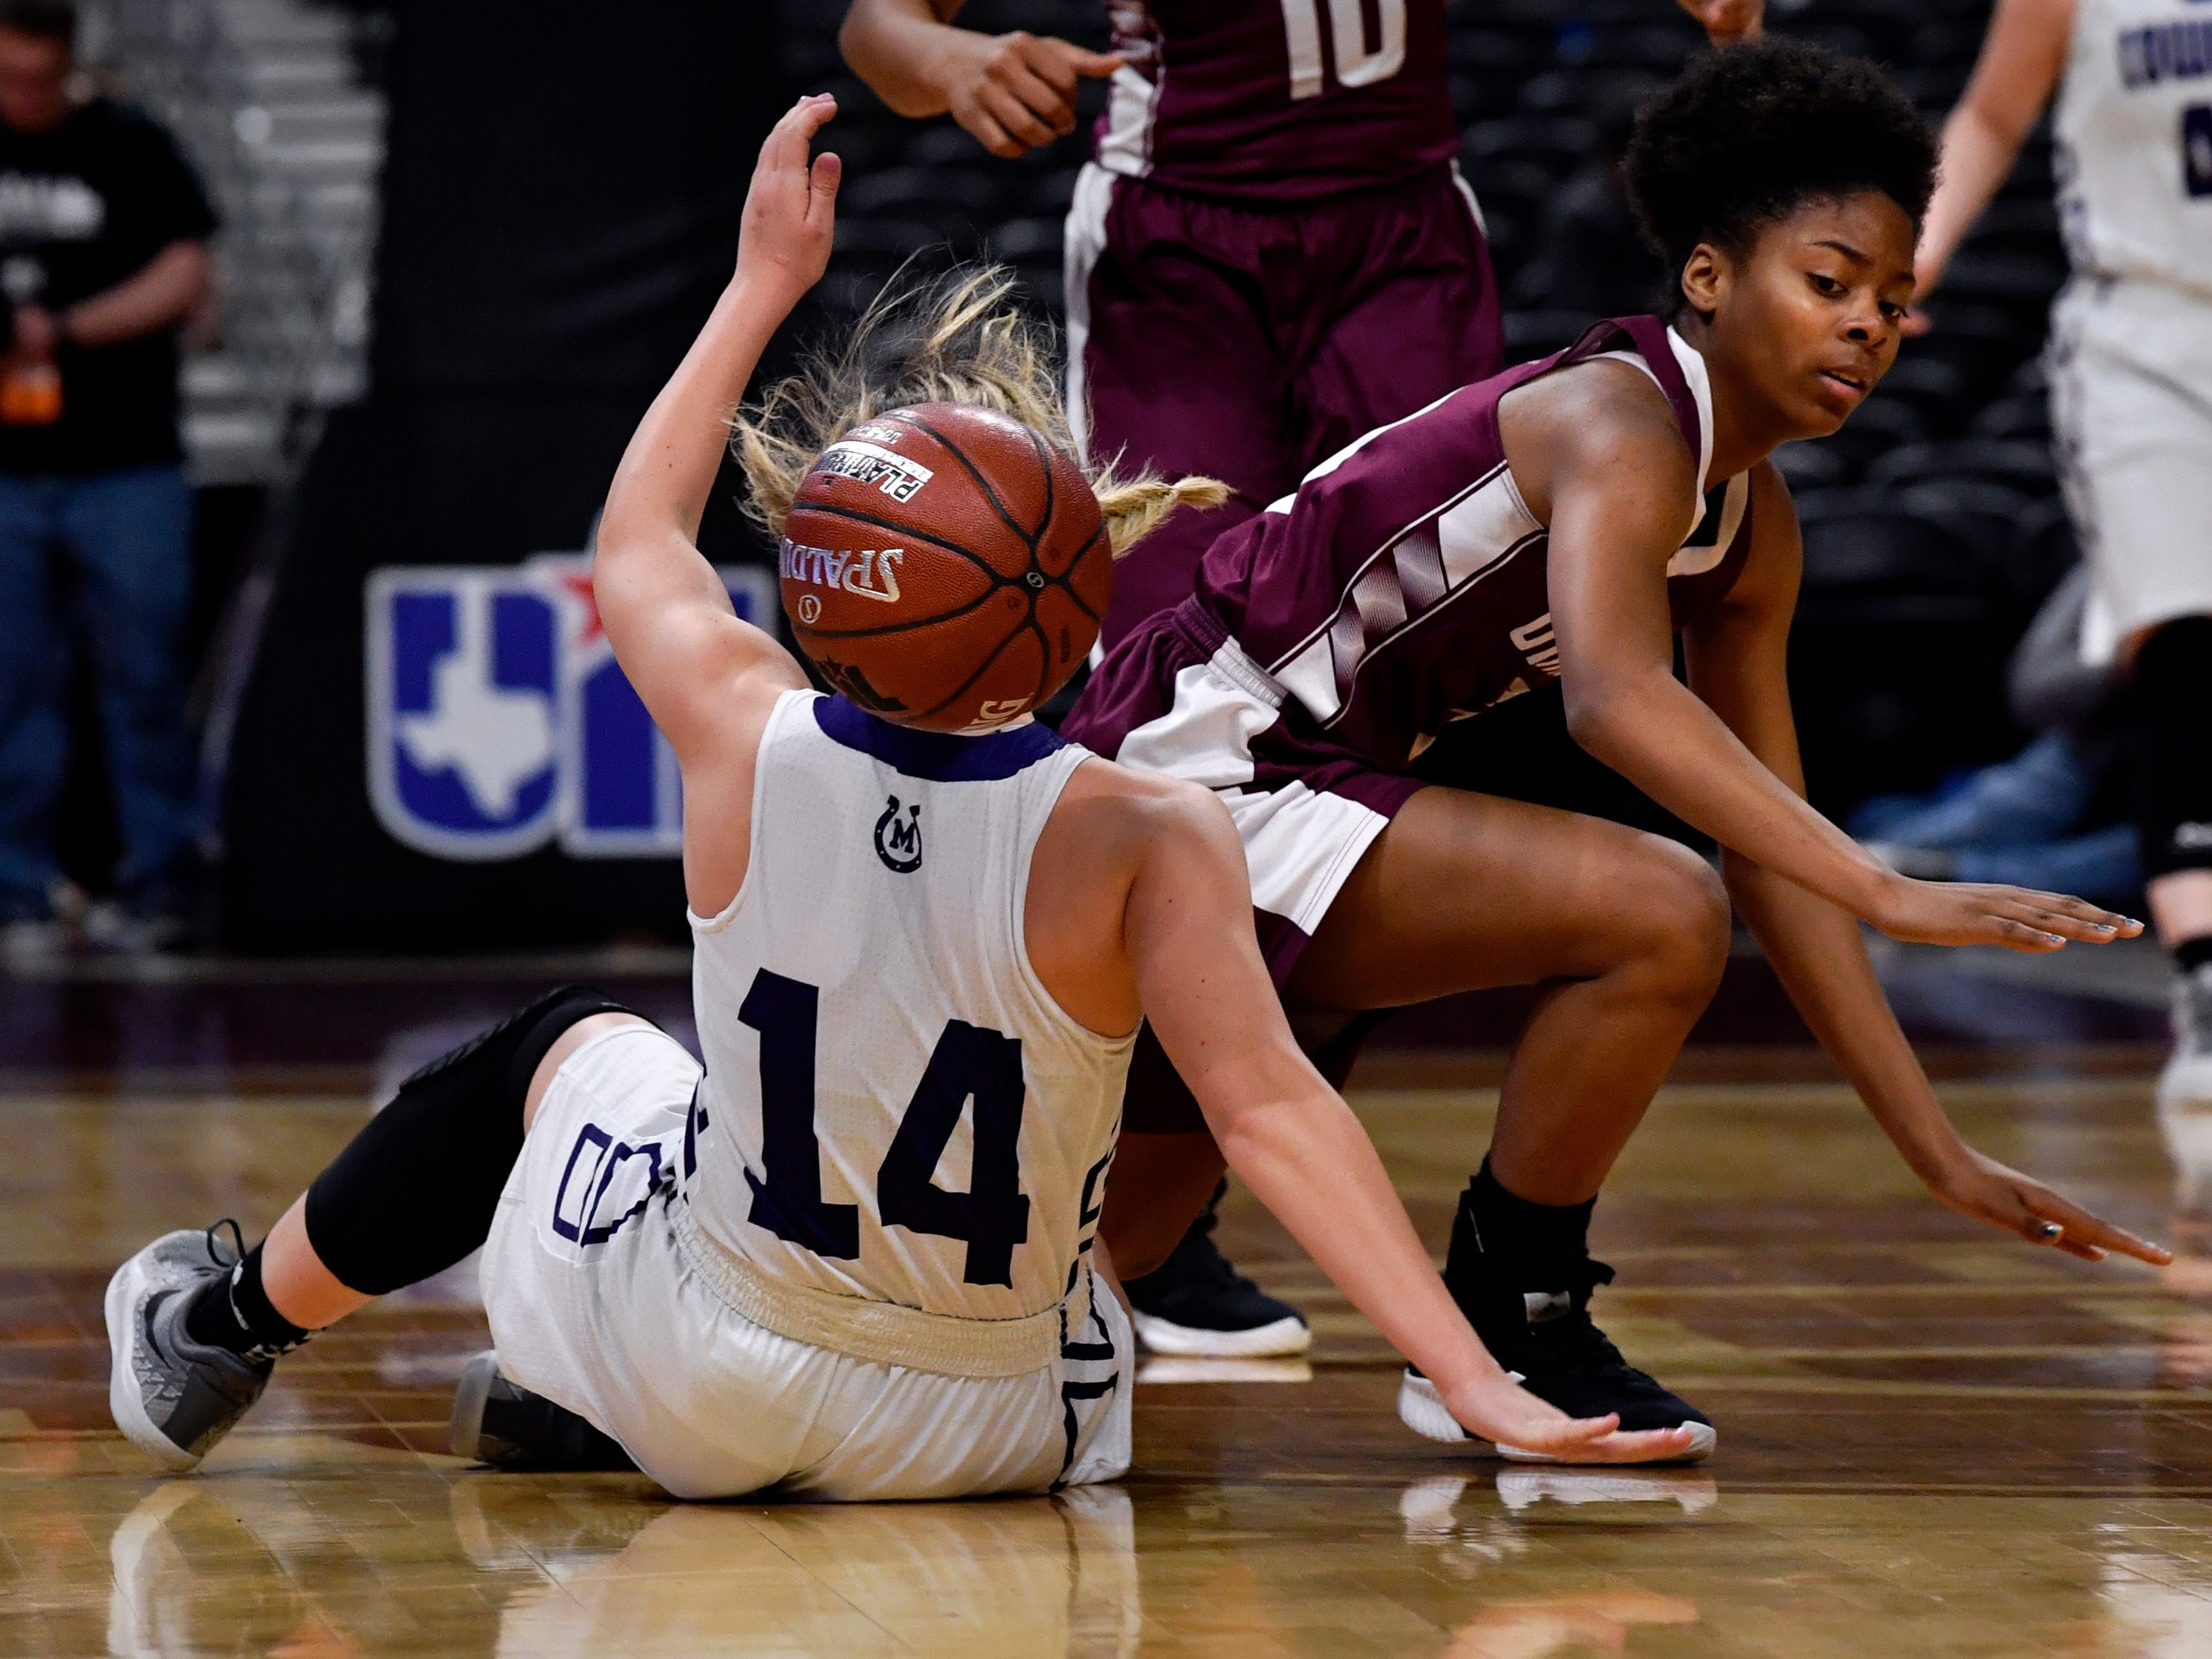 Mason's Presley Anastas is knocked down by Grapeland guard Keaundra Harris during Friday's UIL Class 2A girls state basketball semifinal at the Alamodome in San Antonio March 1, 2019.